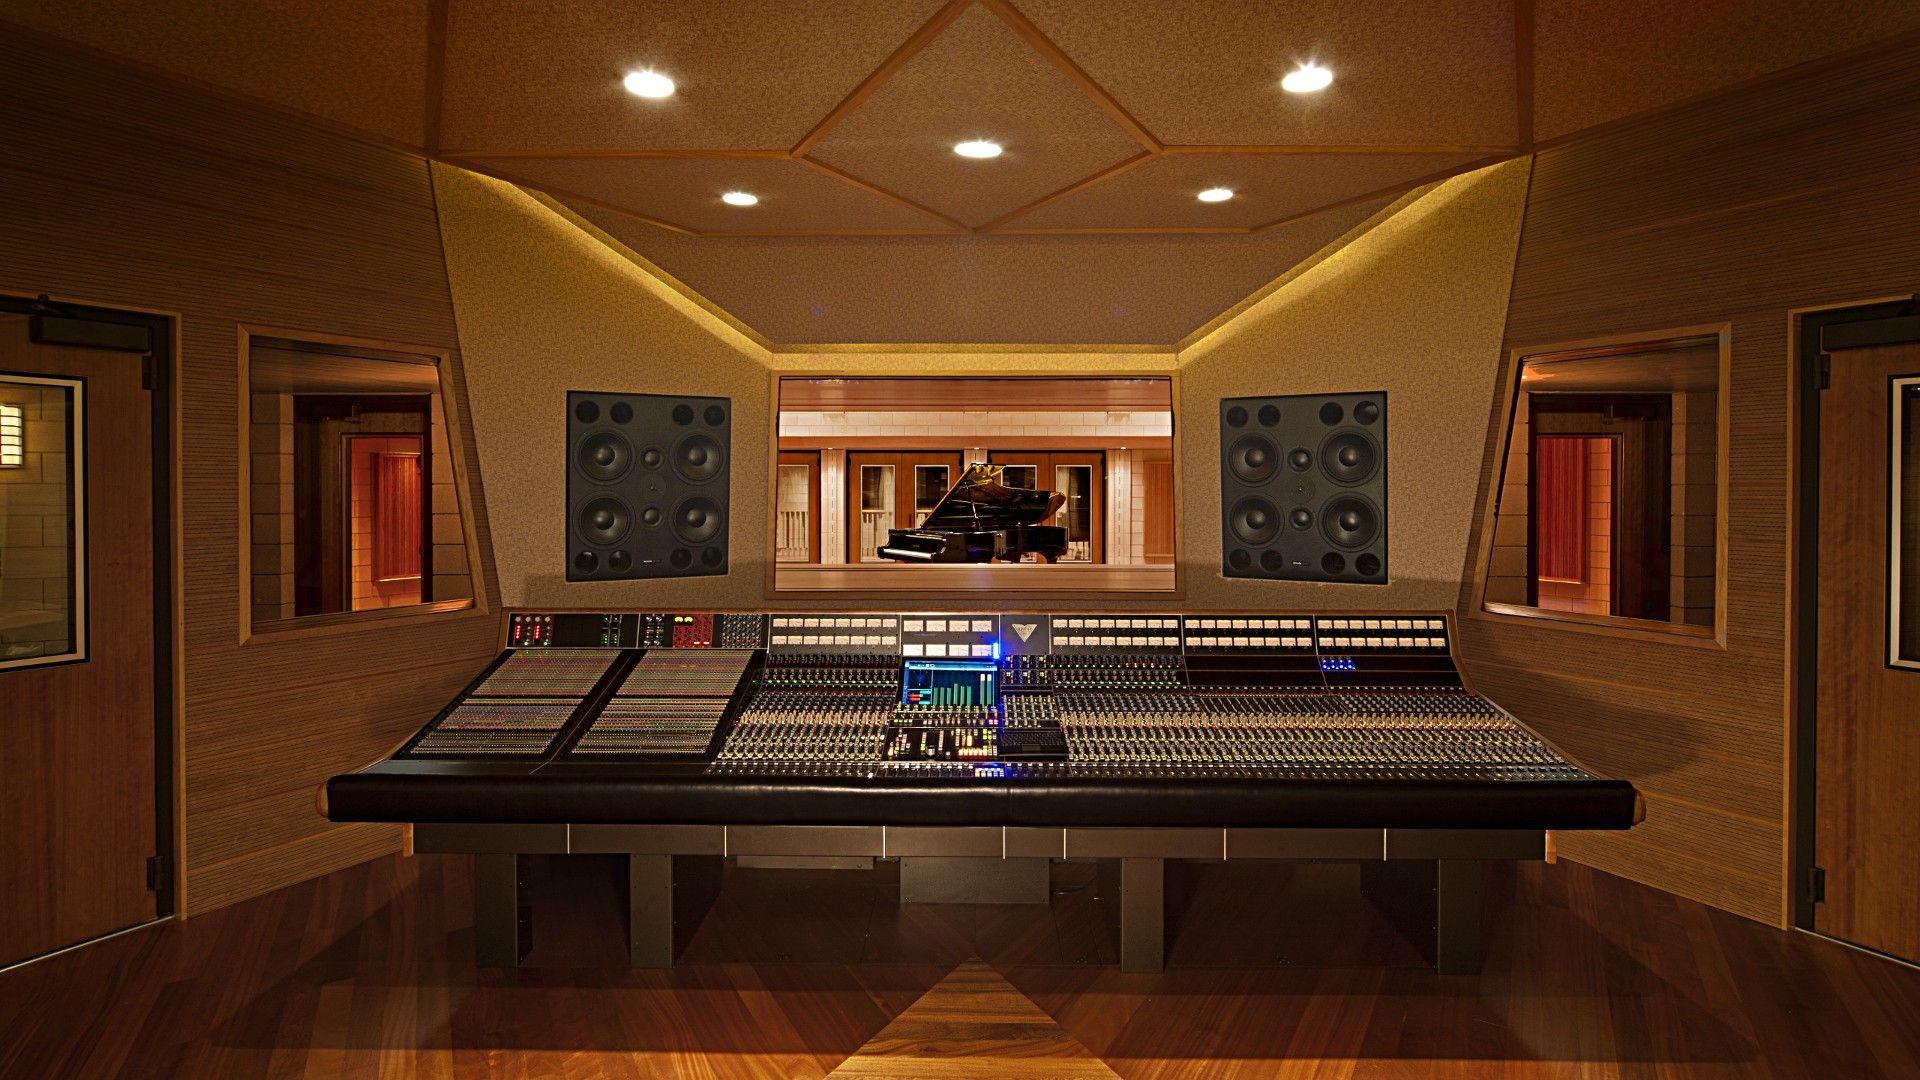 Groovy Wow Big Expensive Studios Are No Longer Needed To Make Music Largest Home Design Picture Inspirations Pitcheantrous